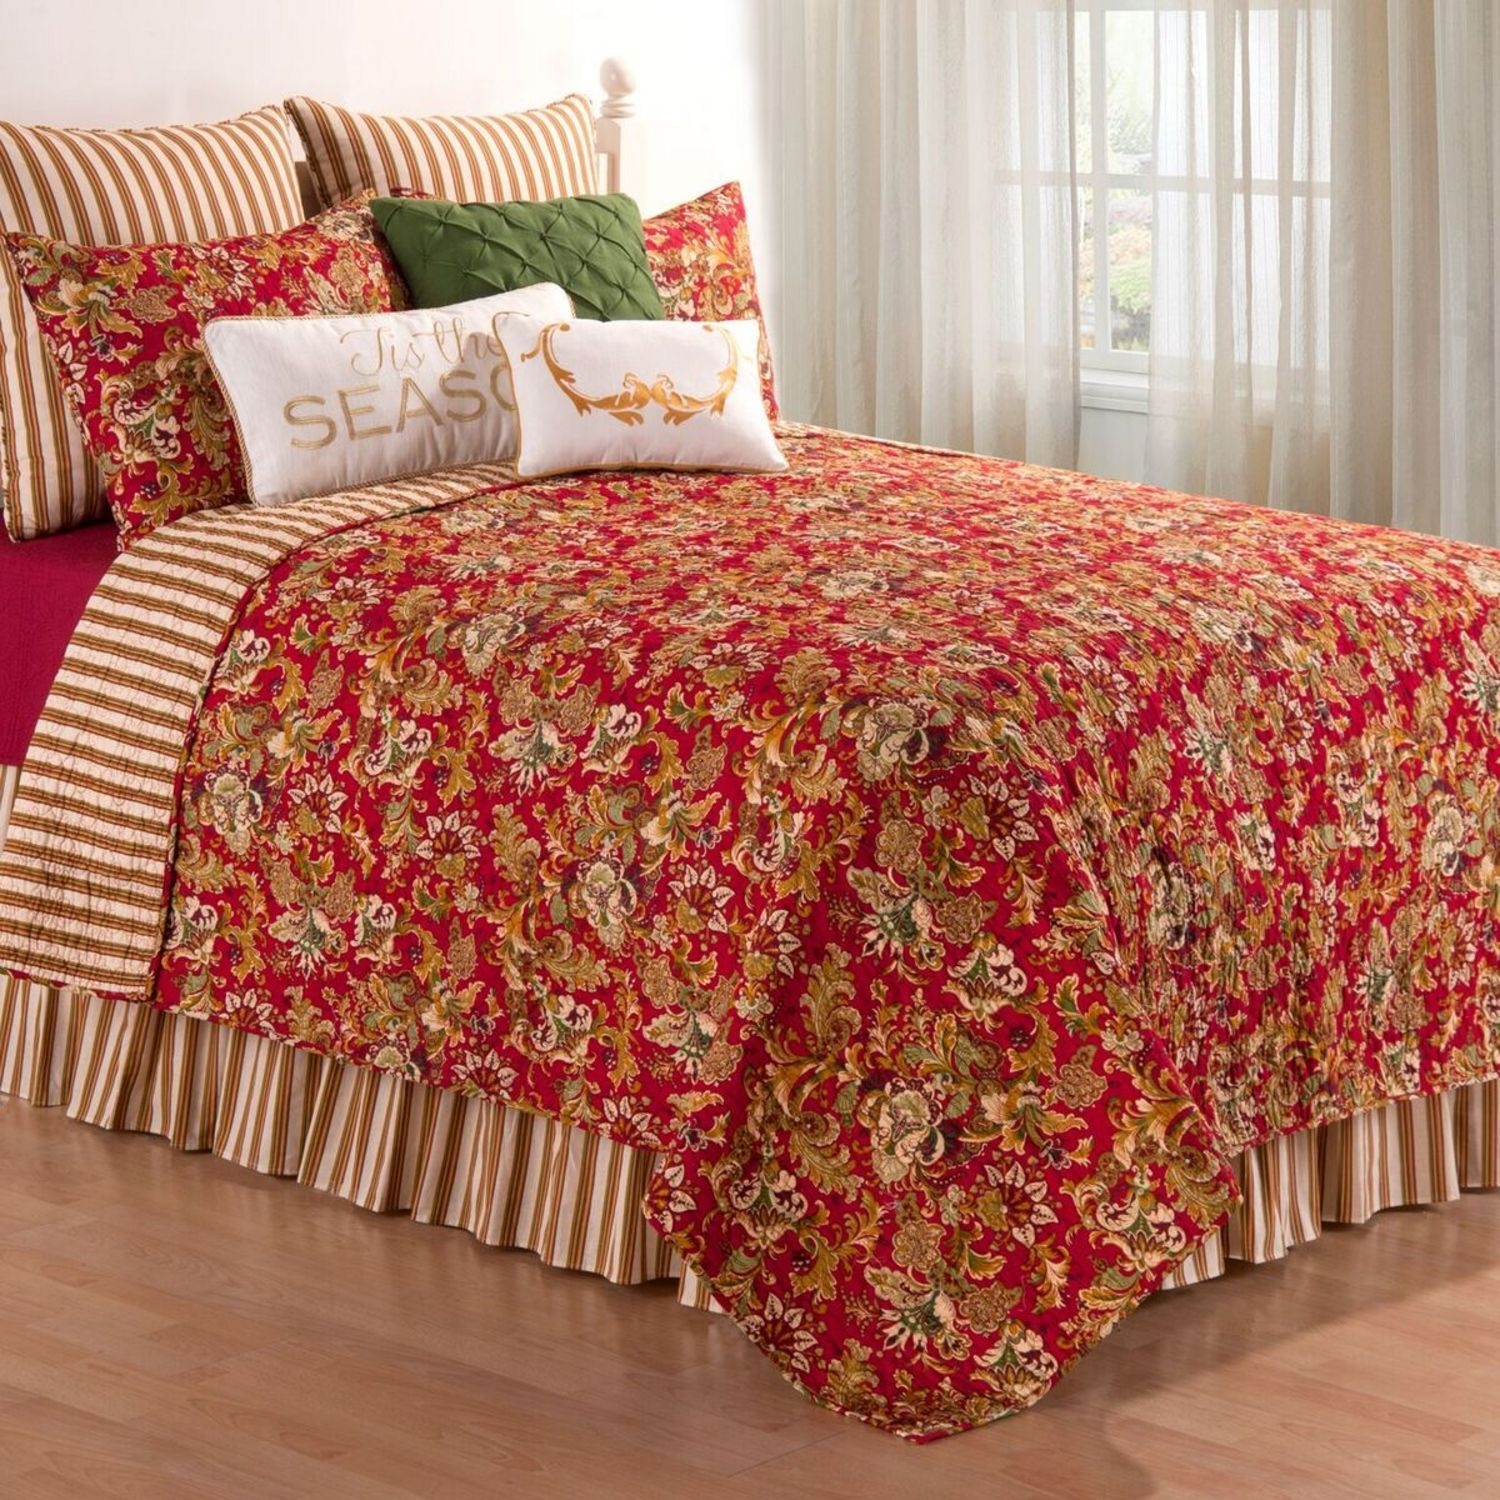 donna f nh bed adalynn custom quilts from c bedding peterborough by quality bath sharp quilt